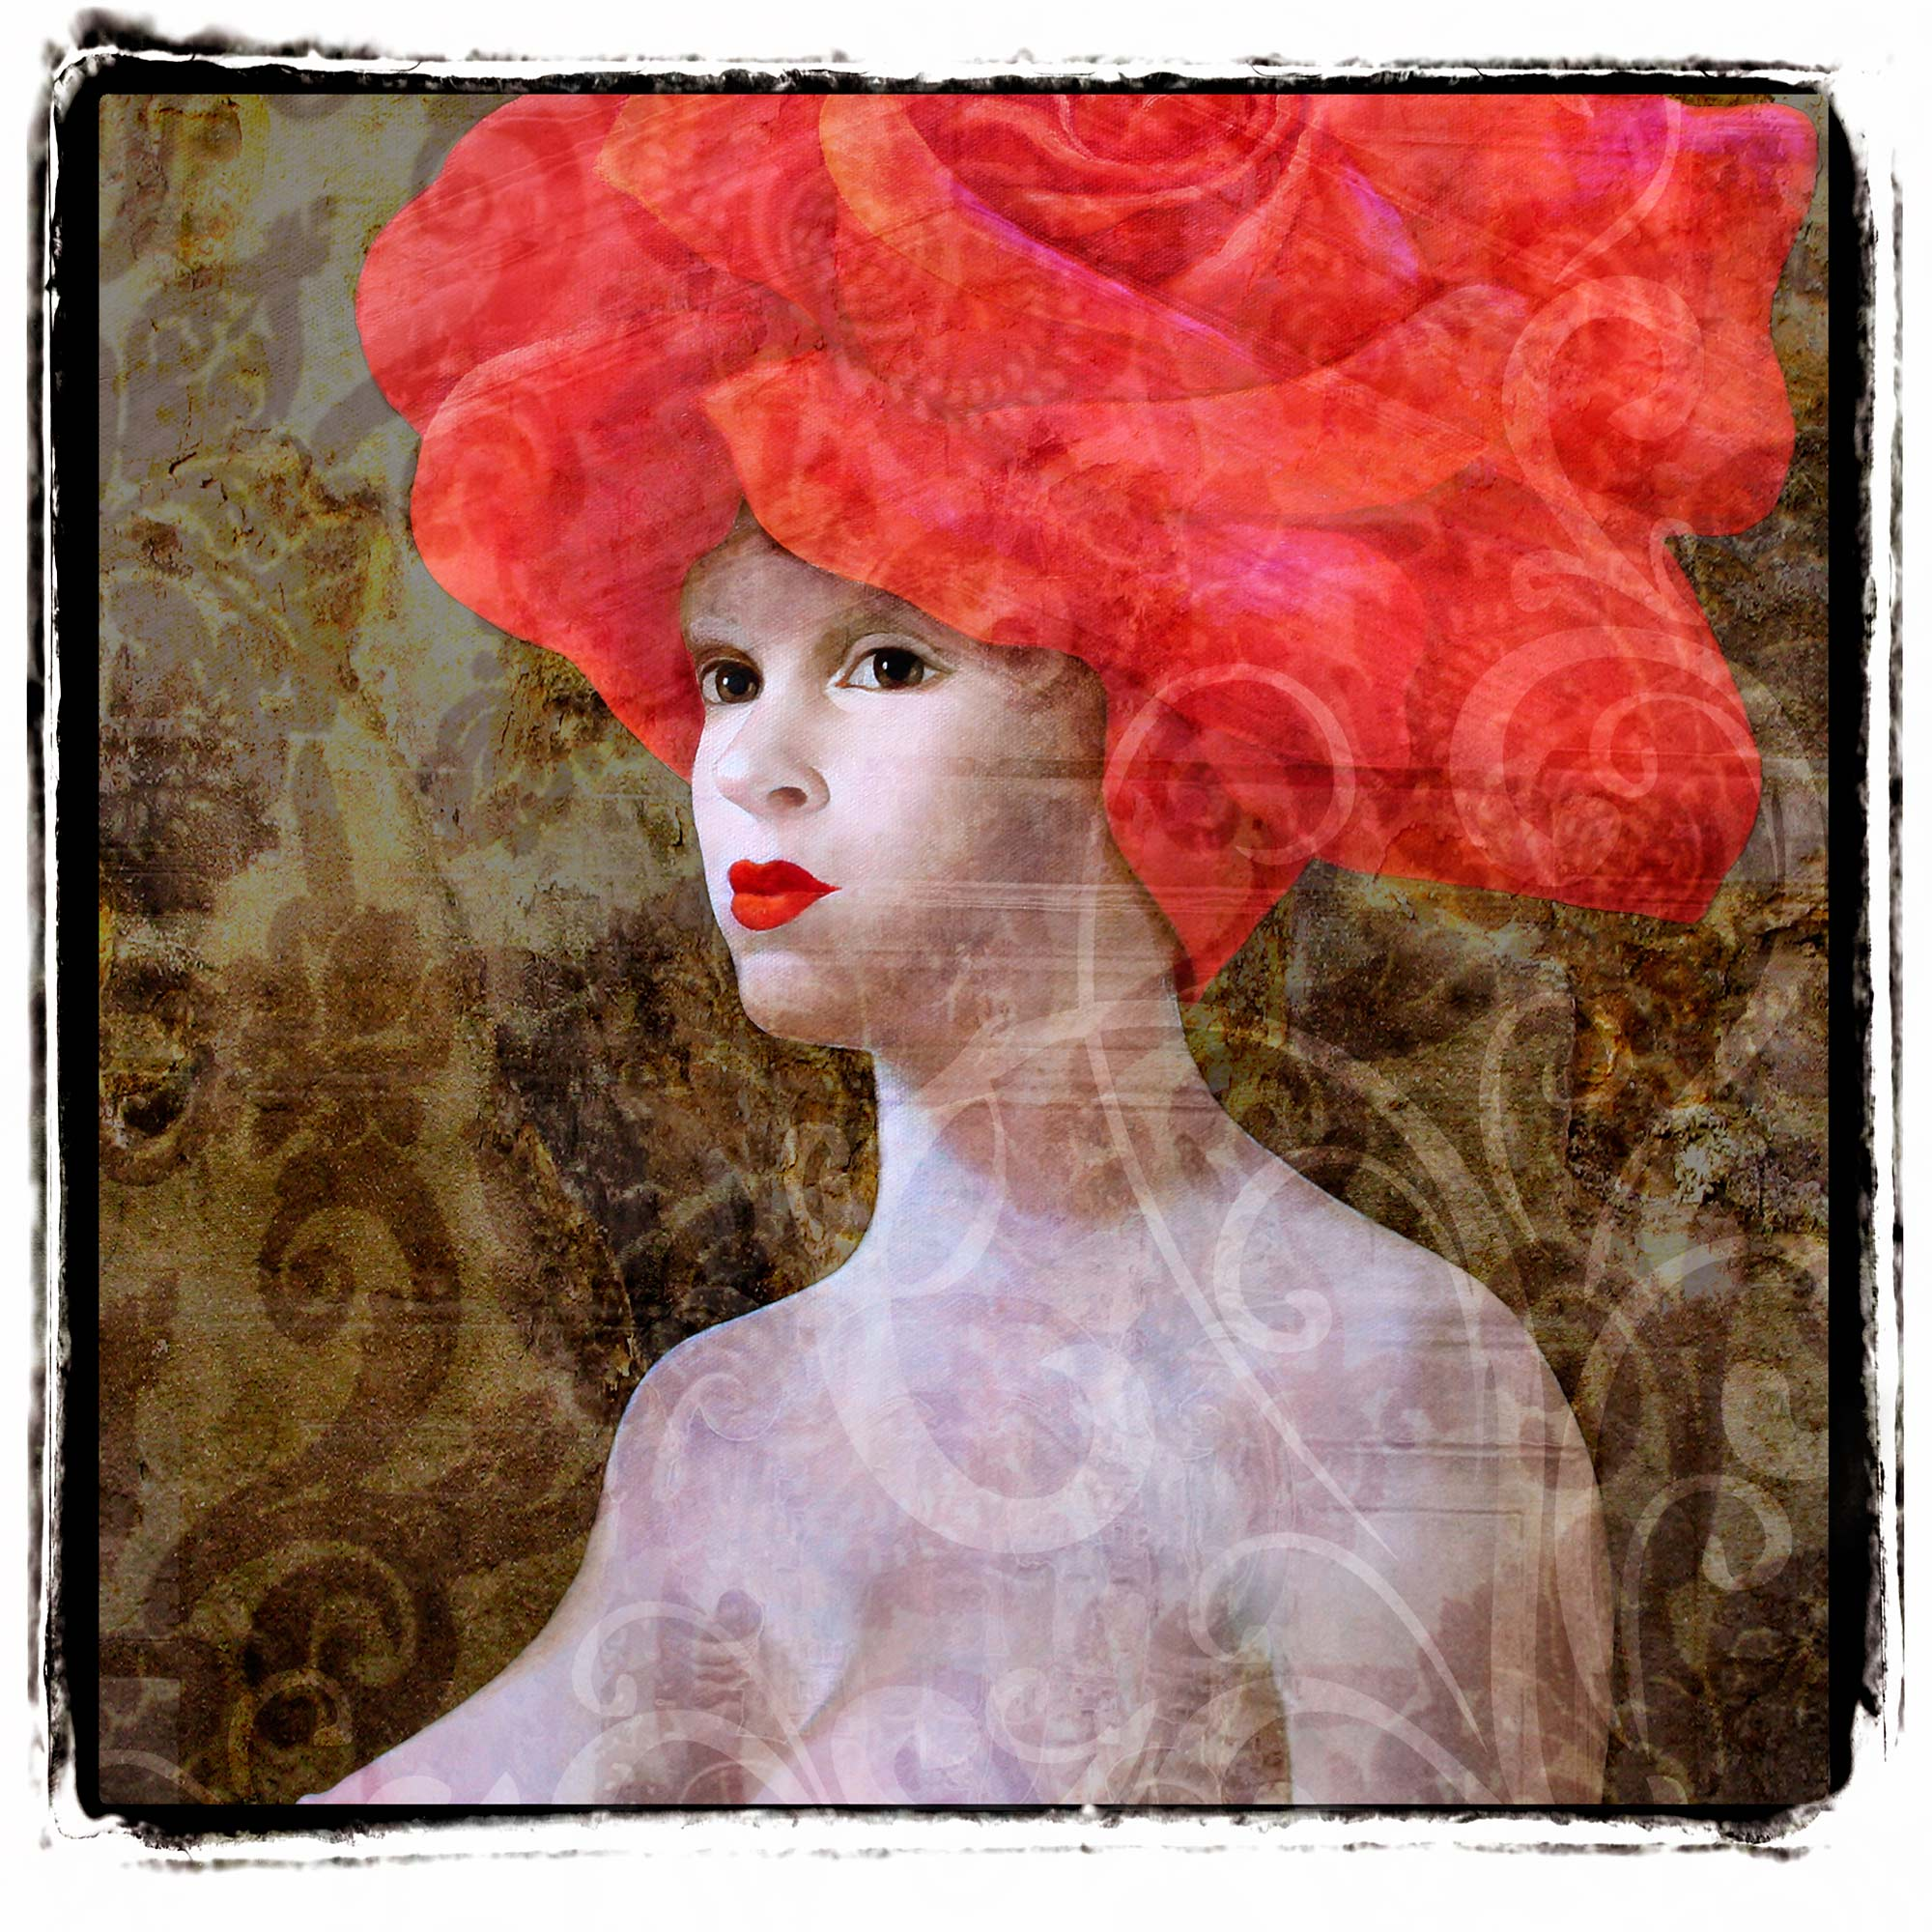 rose-hat-square-small.jpg